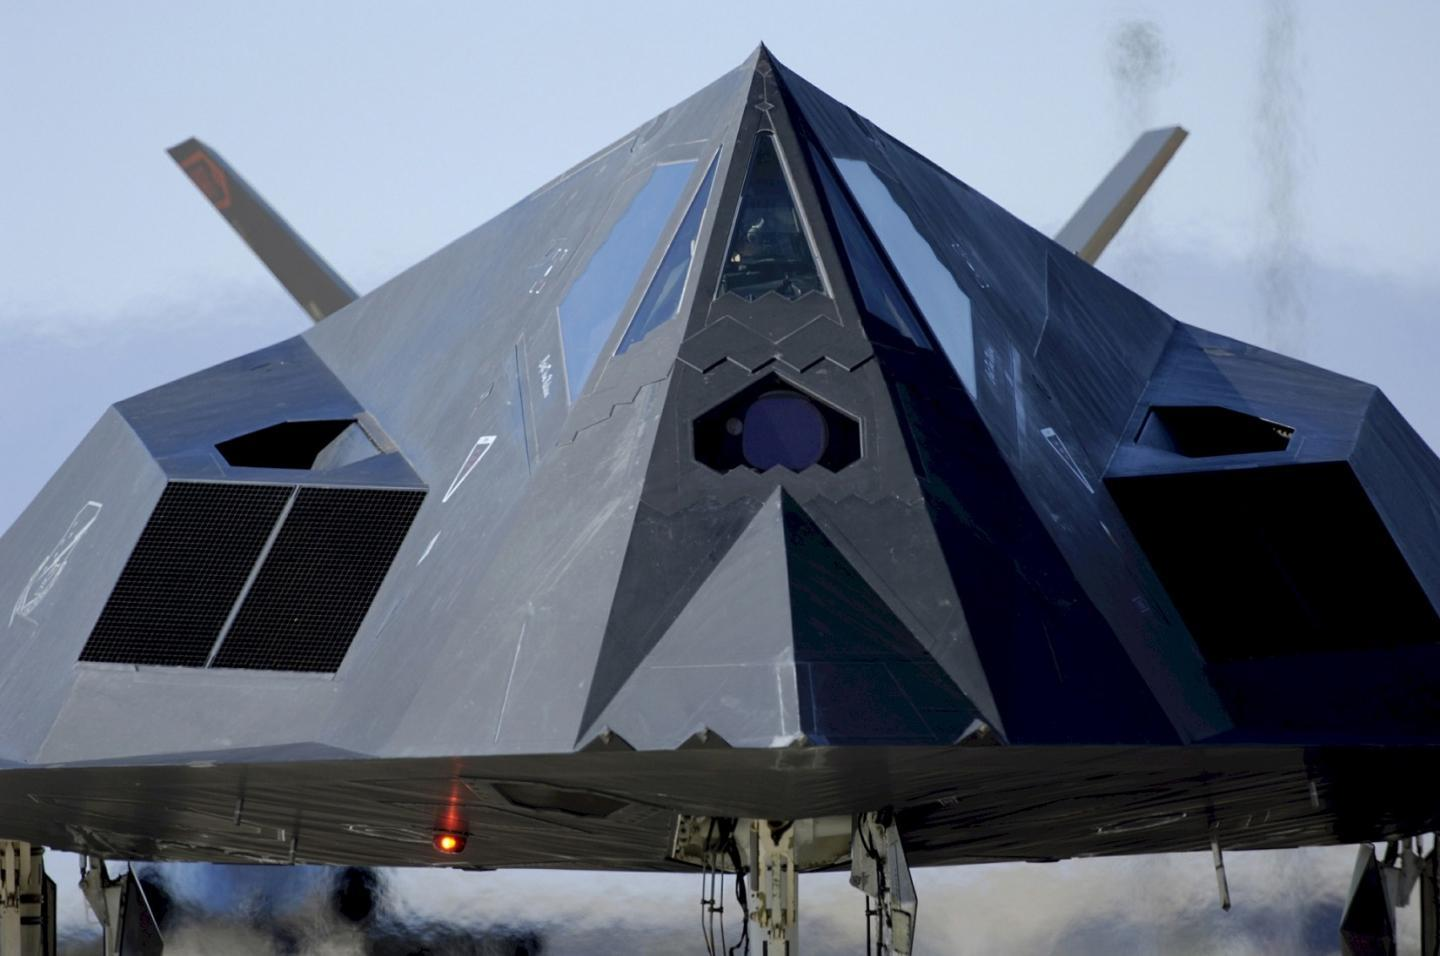 Go Inside Area 51: Land of Top Secret 'Black Projects' and Stealth Fighters